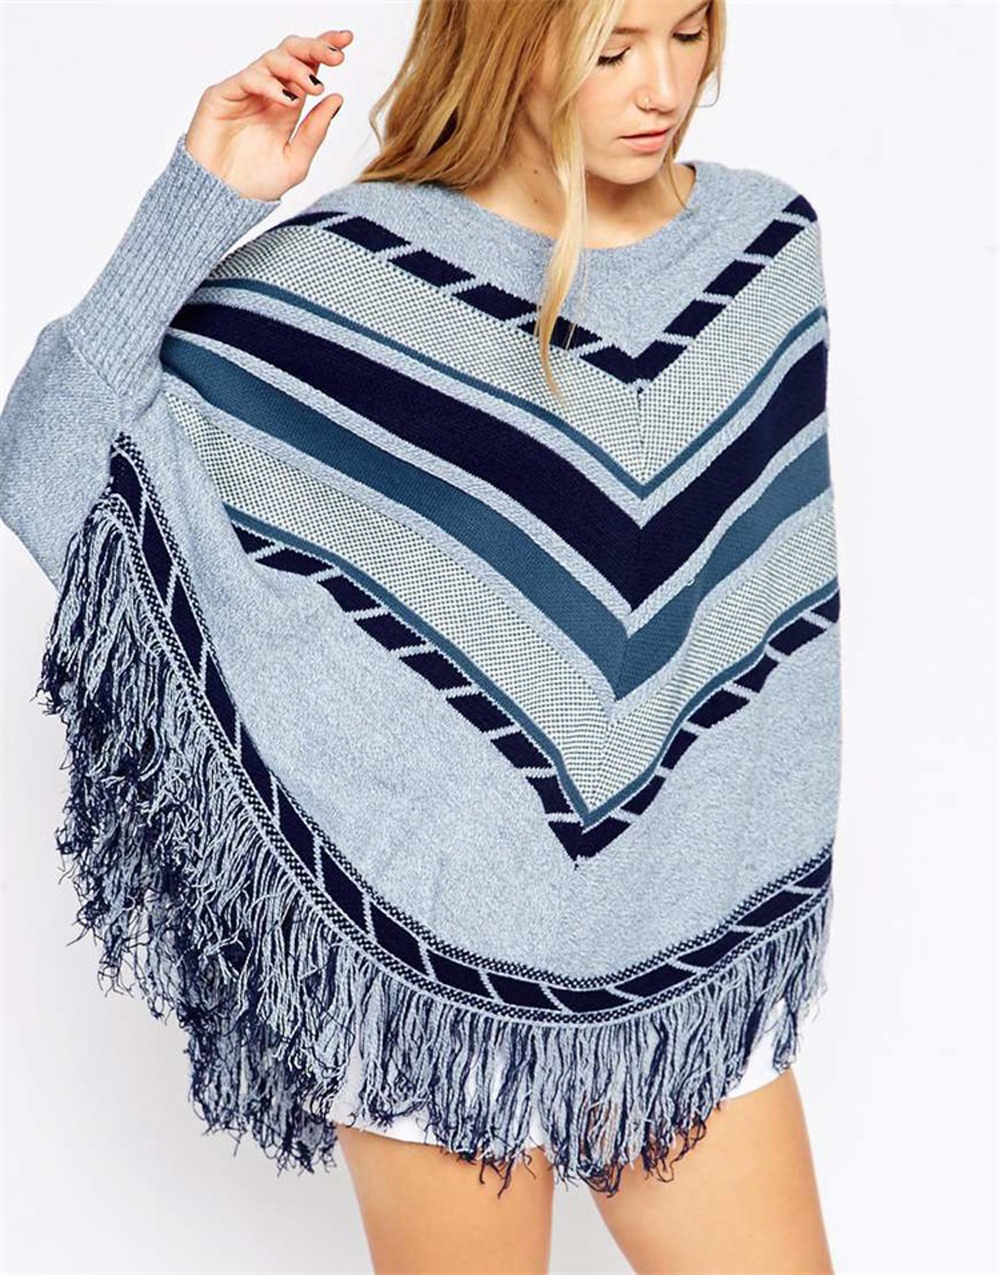 все цены на Maternity Tassel Cape Shawl Sweater Poncho Ladies' Cape with Fringed Hem Striped Patchwork Pullover Fashionable Retro Style онлайн